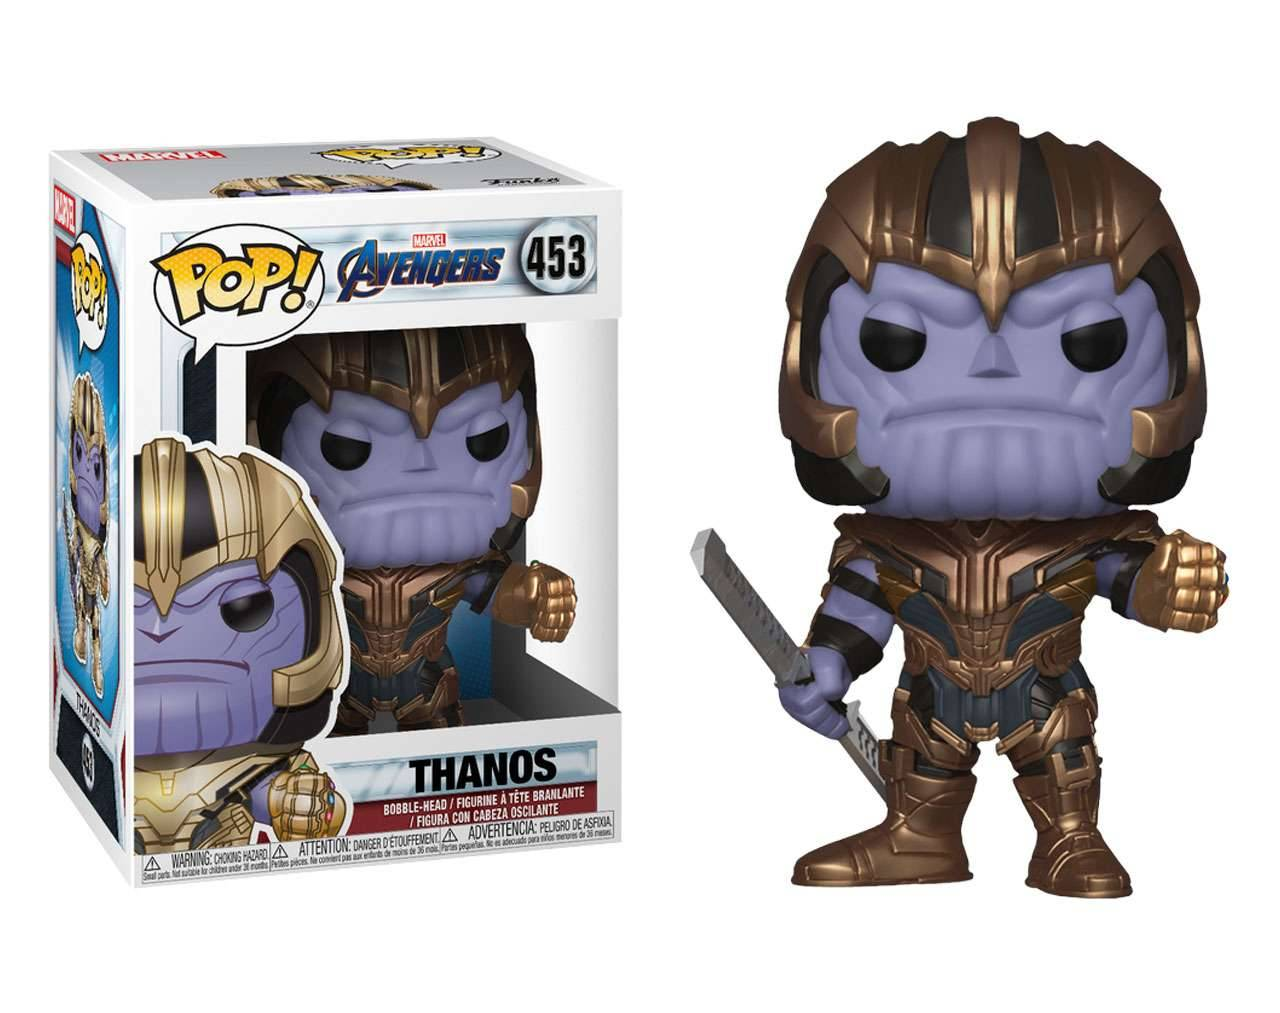 Thanos (Endgame) Pop! Vinyl